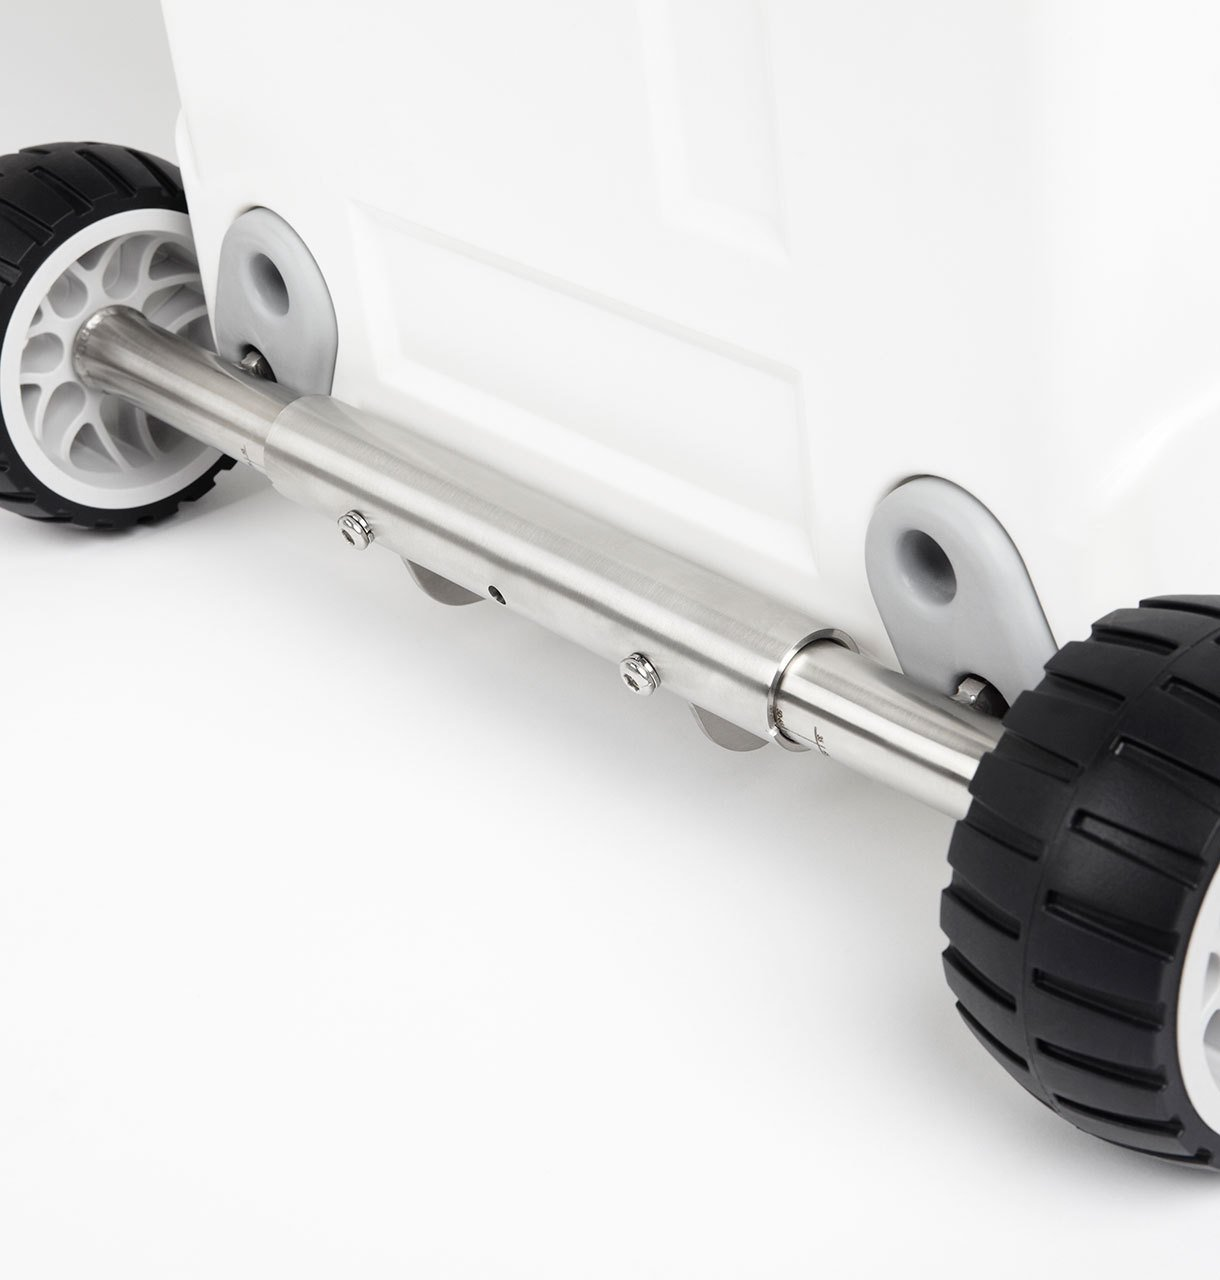 Badger Wheels - Single Axle for Yeti Tundra 35-160 by Badger Wheels (Image #3)